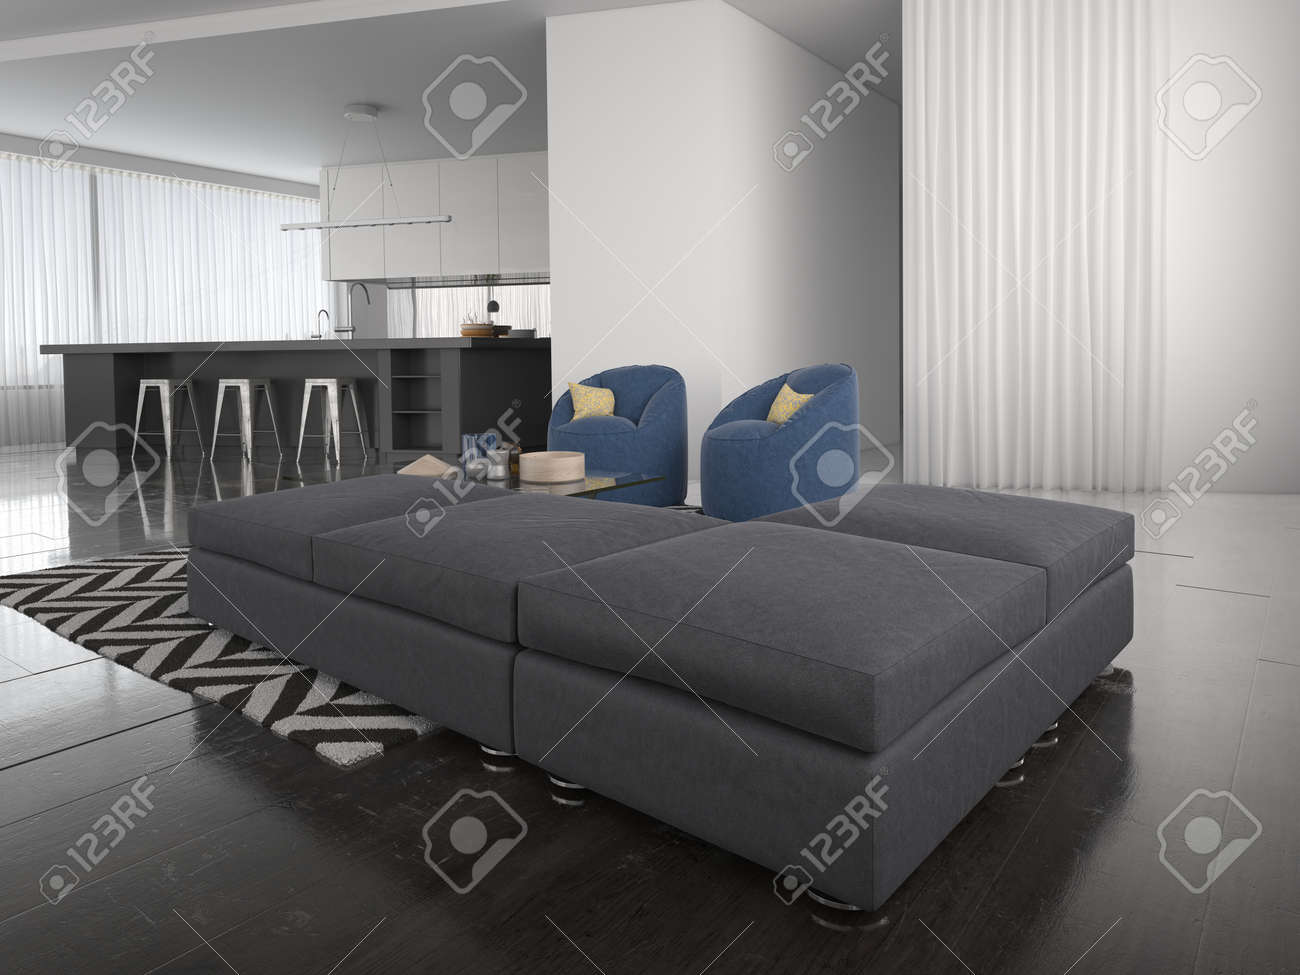 Modern Ottoman Style Lounge Suite In A Large Airy Open Plan Living Room Interior Sombre